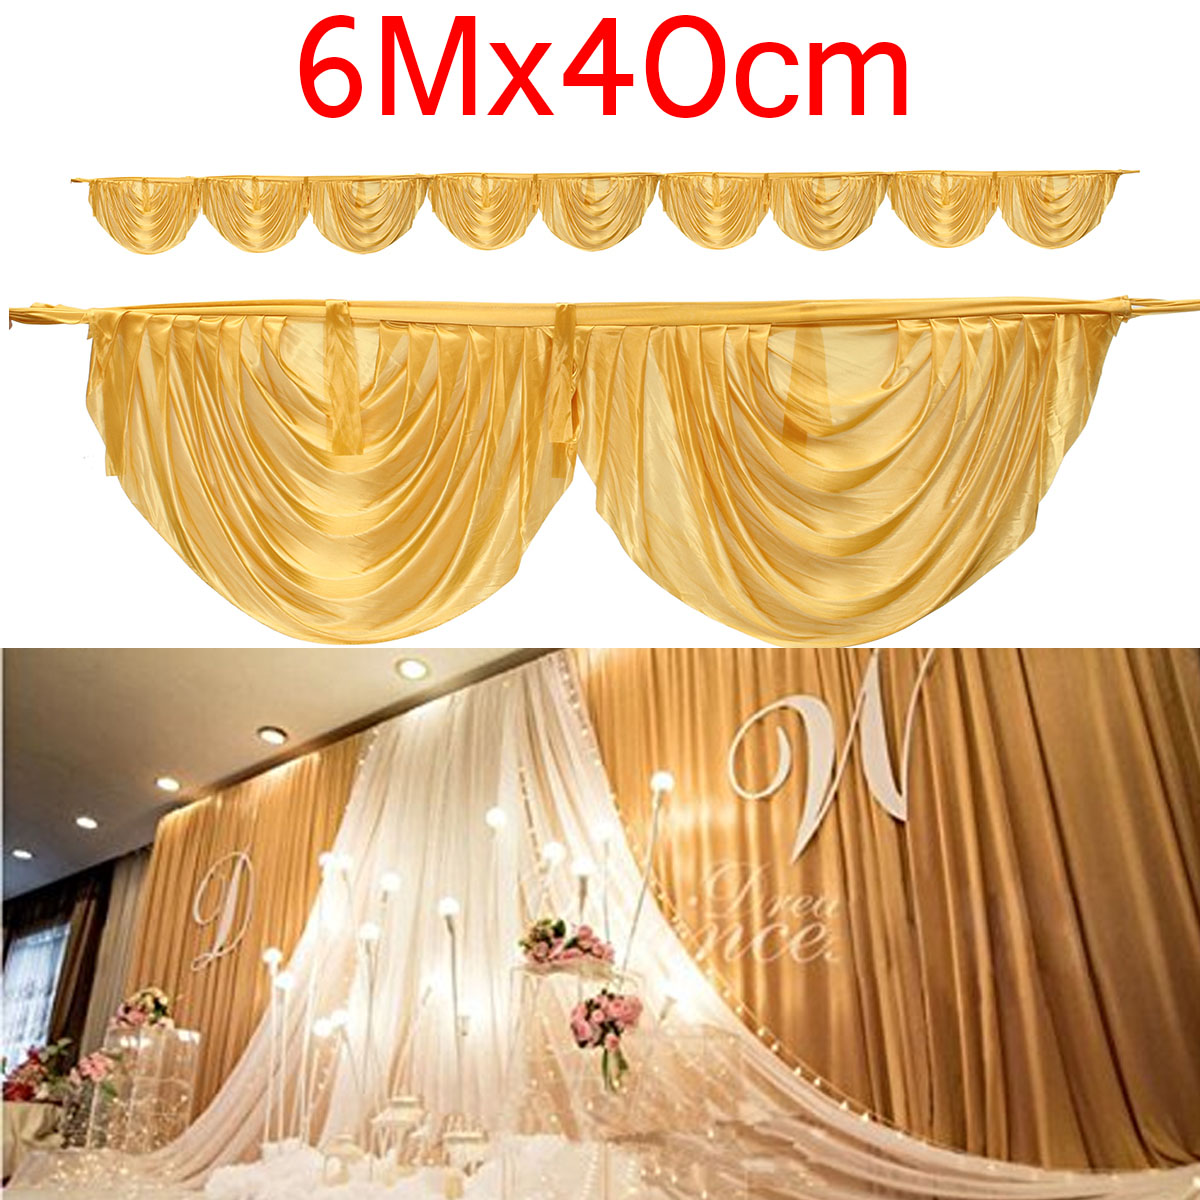 600x40cm Silk Fabric Wedding Backdrops Curtains Swags DIY Wedding Decoration Party Stage Background Cloth Party Favors Gold